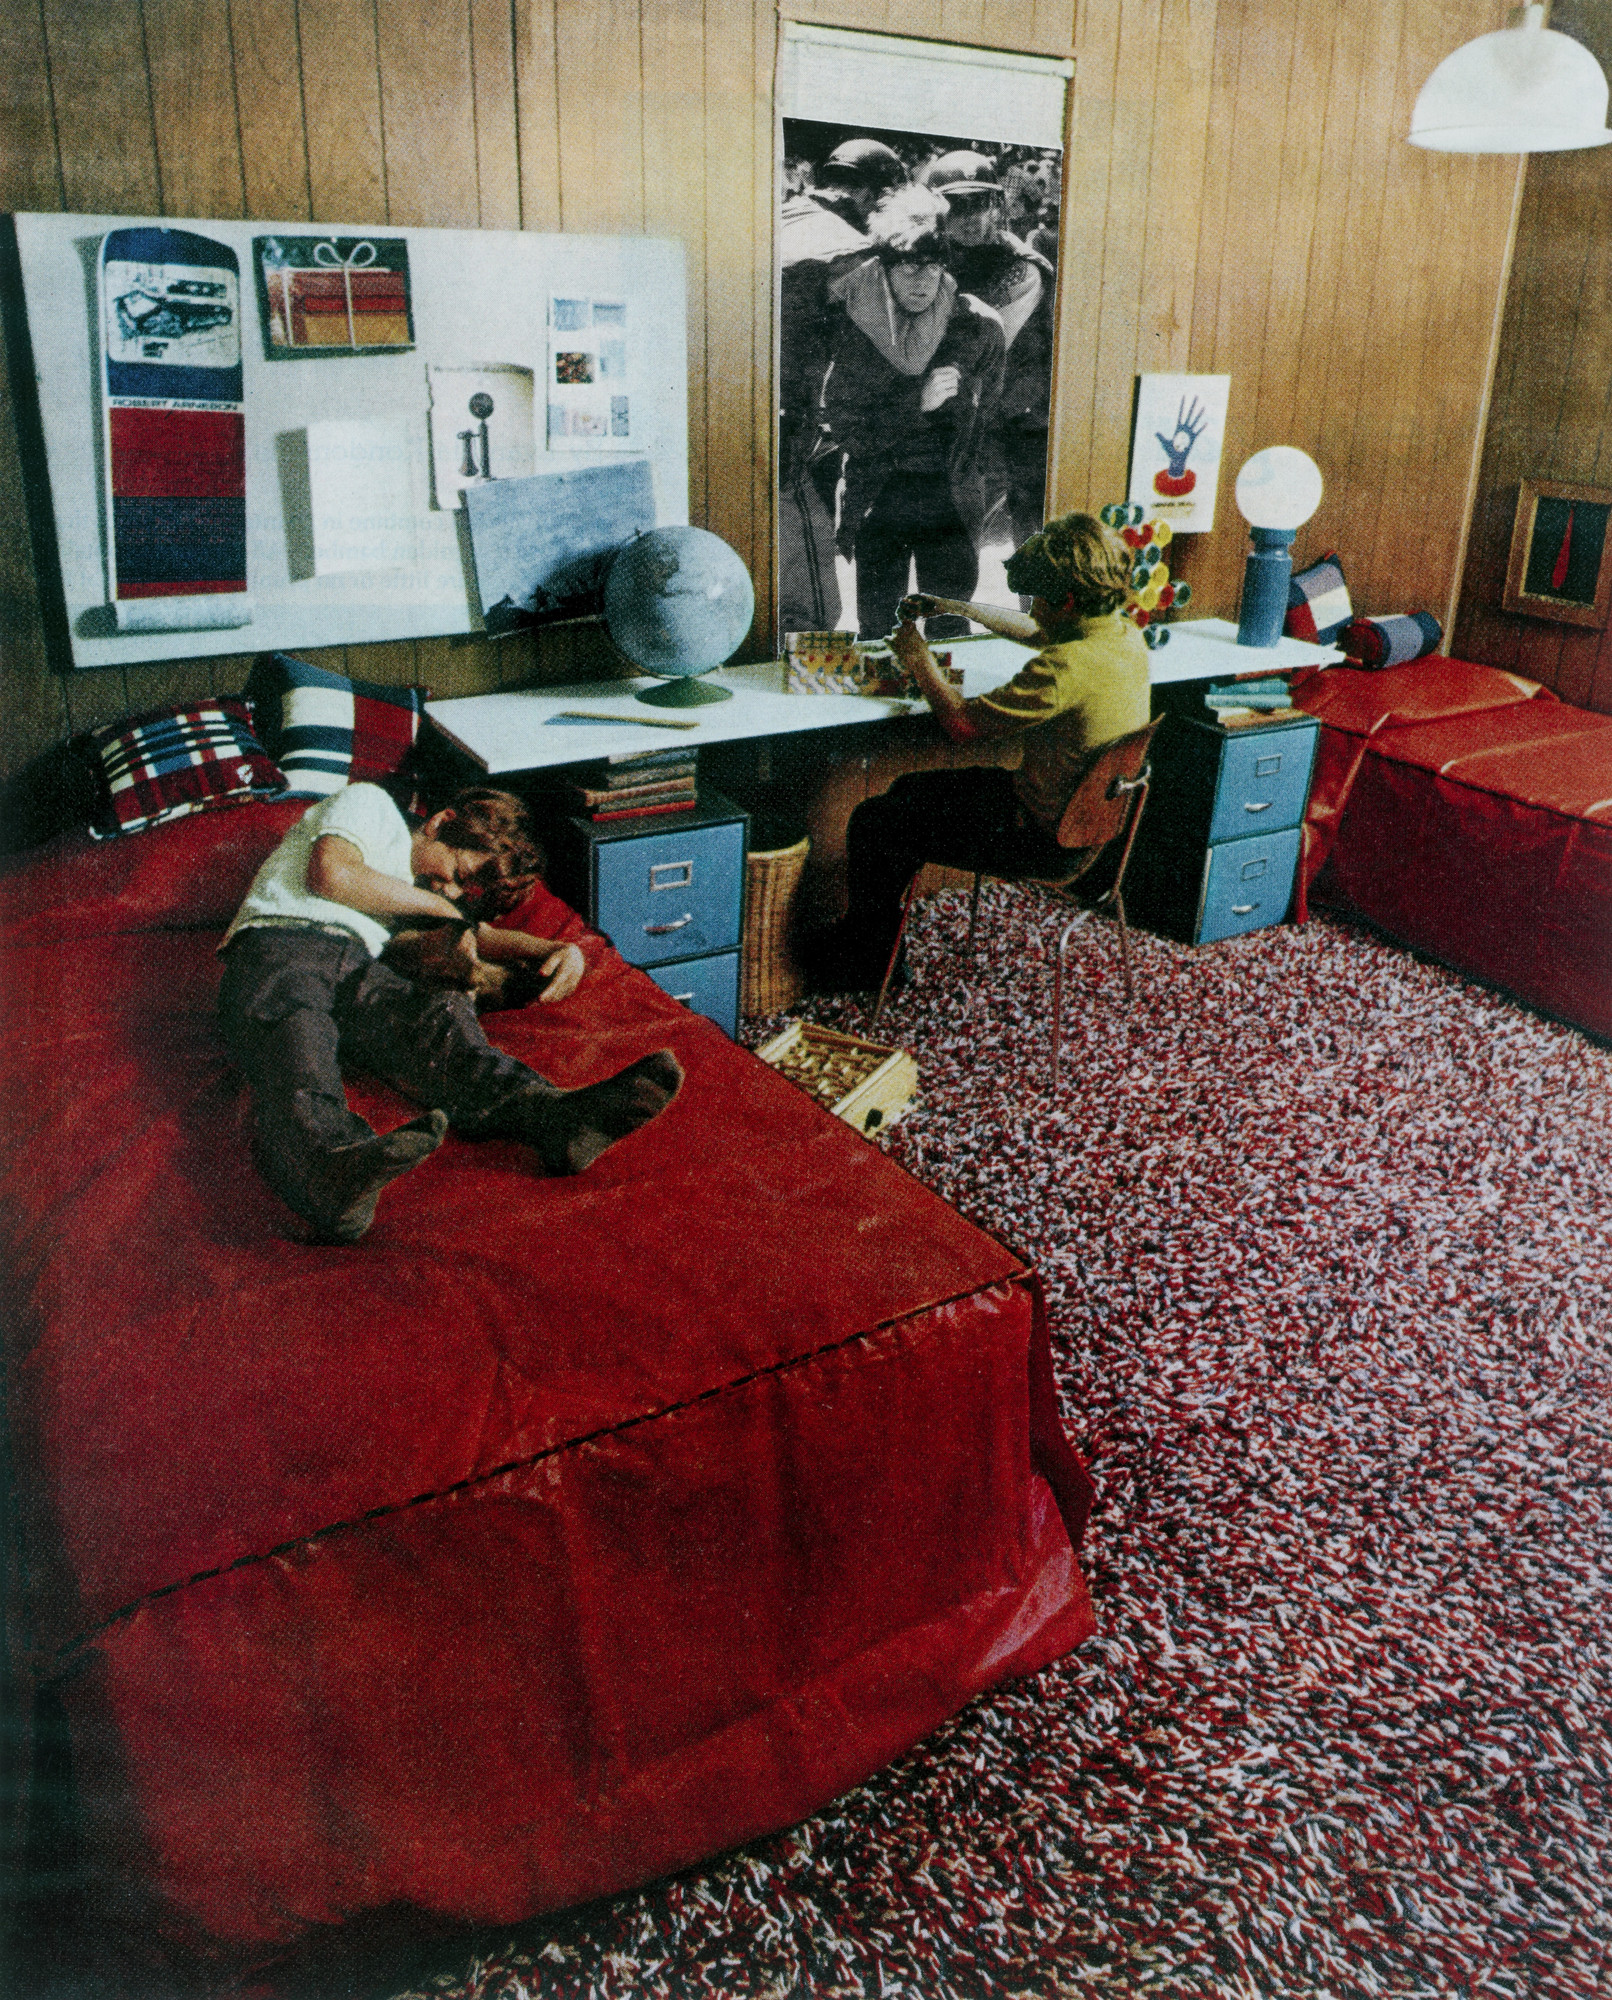 Martha Rosler. Boys' Room from the series House Beautiful: Bringing the War Home. c. 1967-72